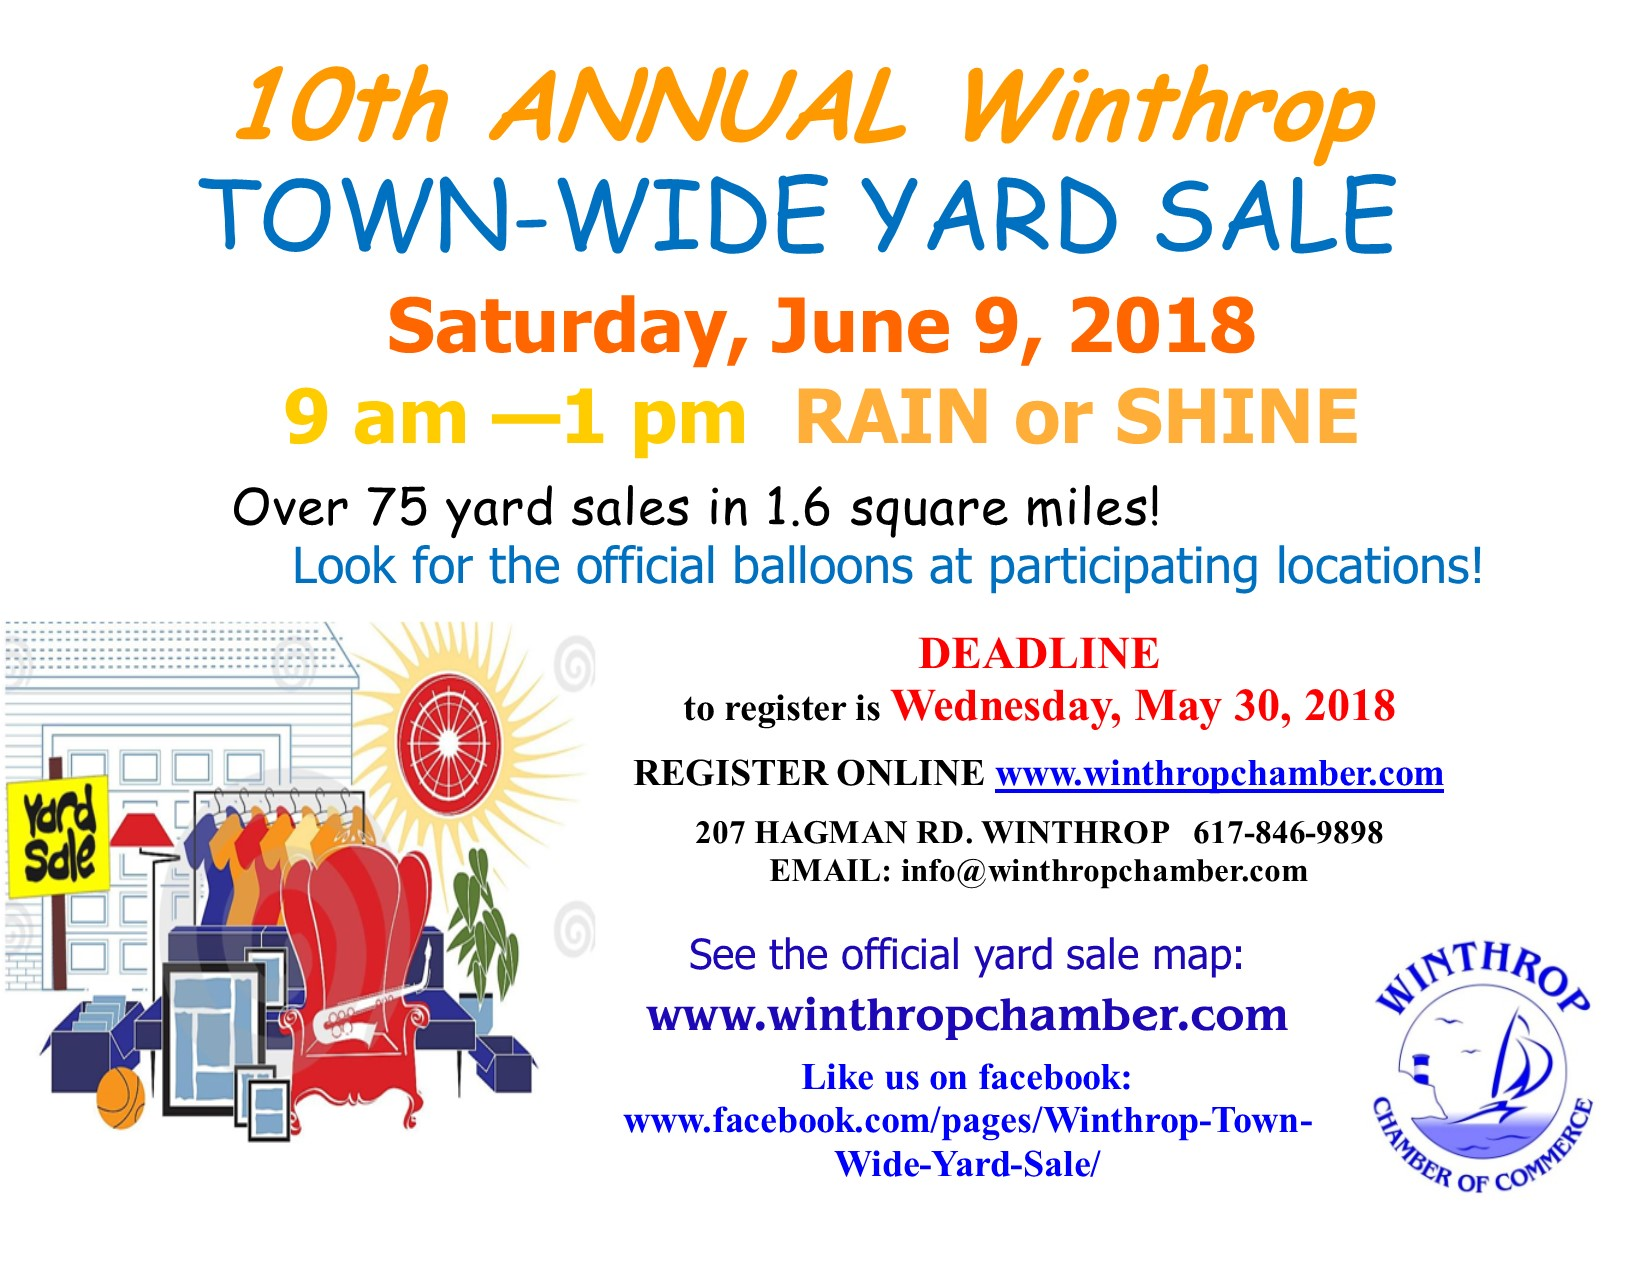 Winthrop Town Wide Yard Sale 2018 - Winthrop Chamber of Commerce